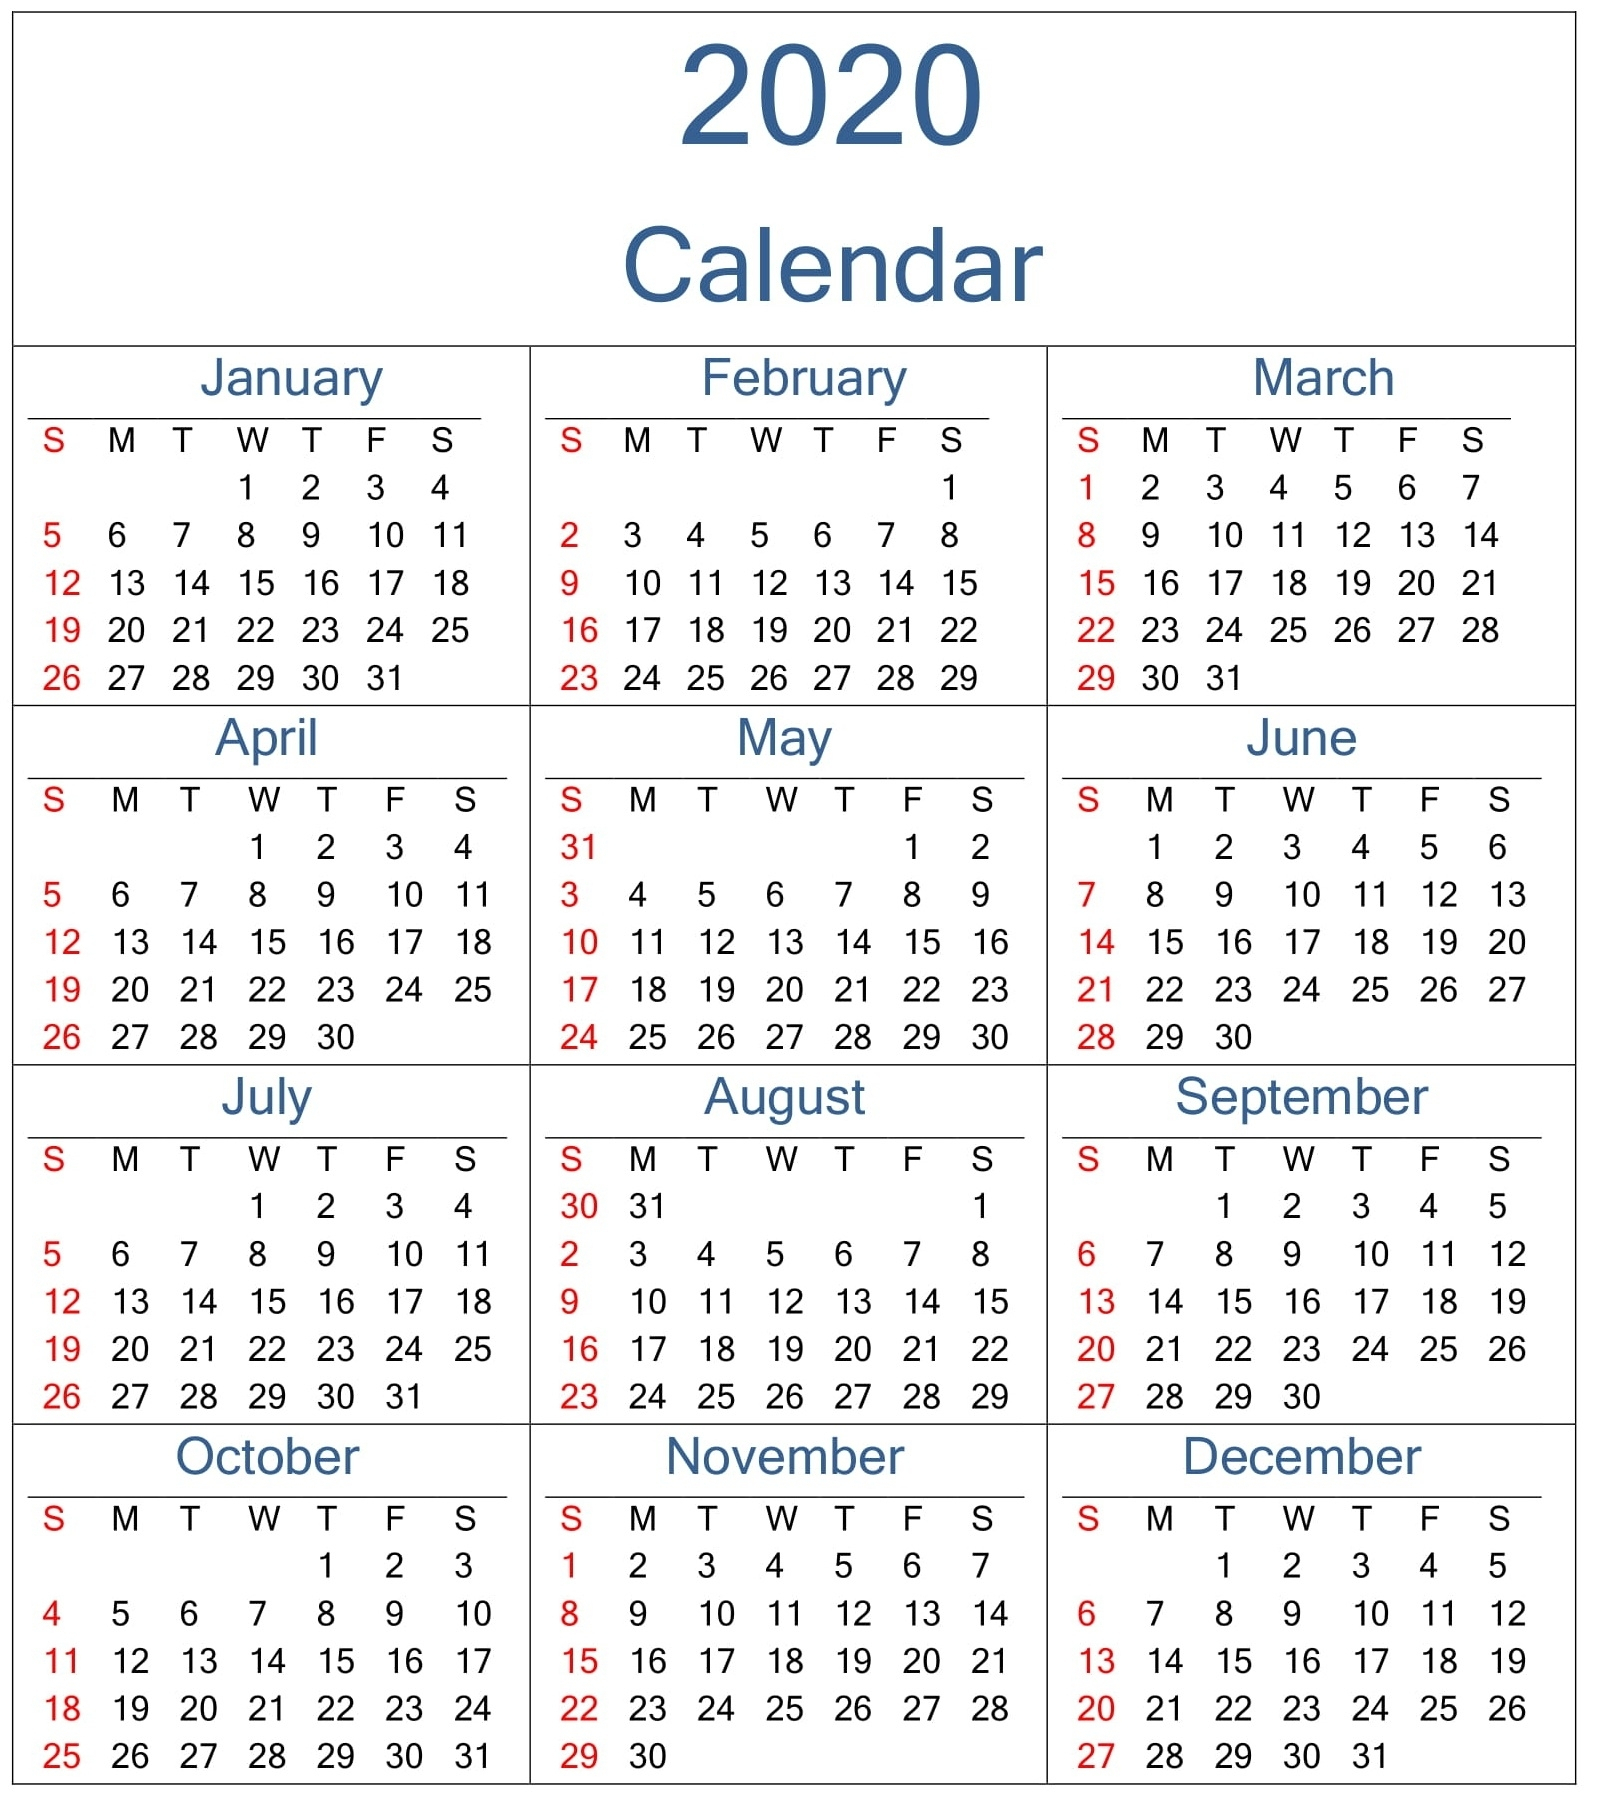 Yearly Monday To Sunday Calendar 2020 With Week Numbers